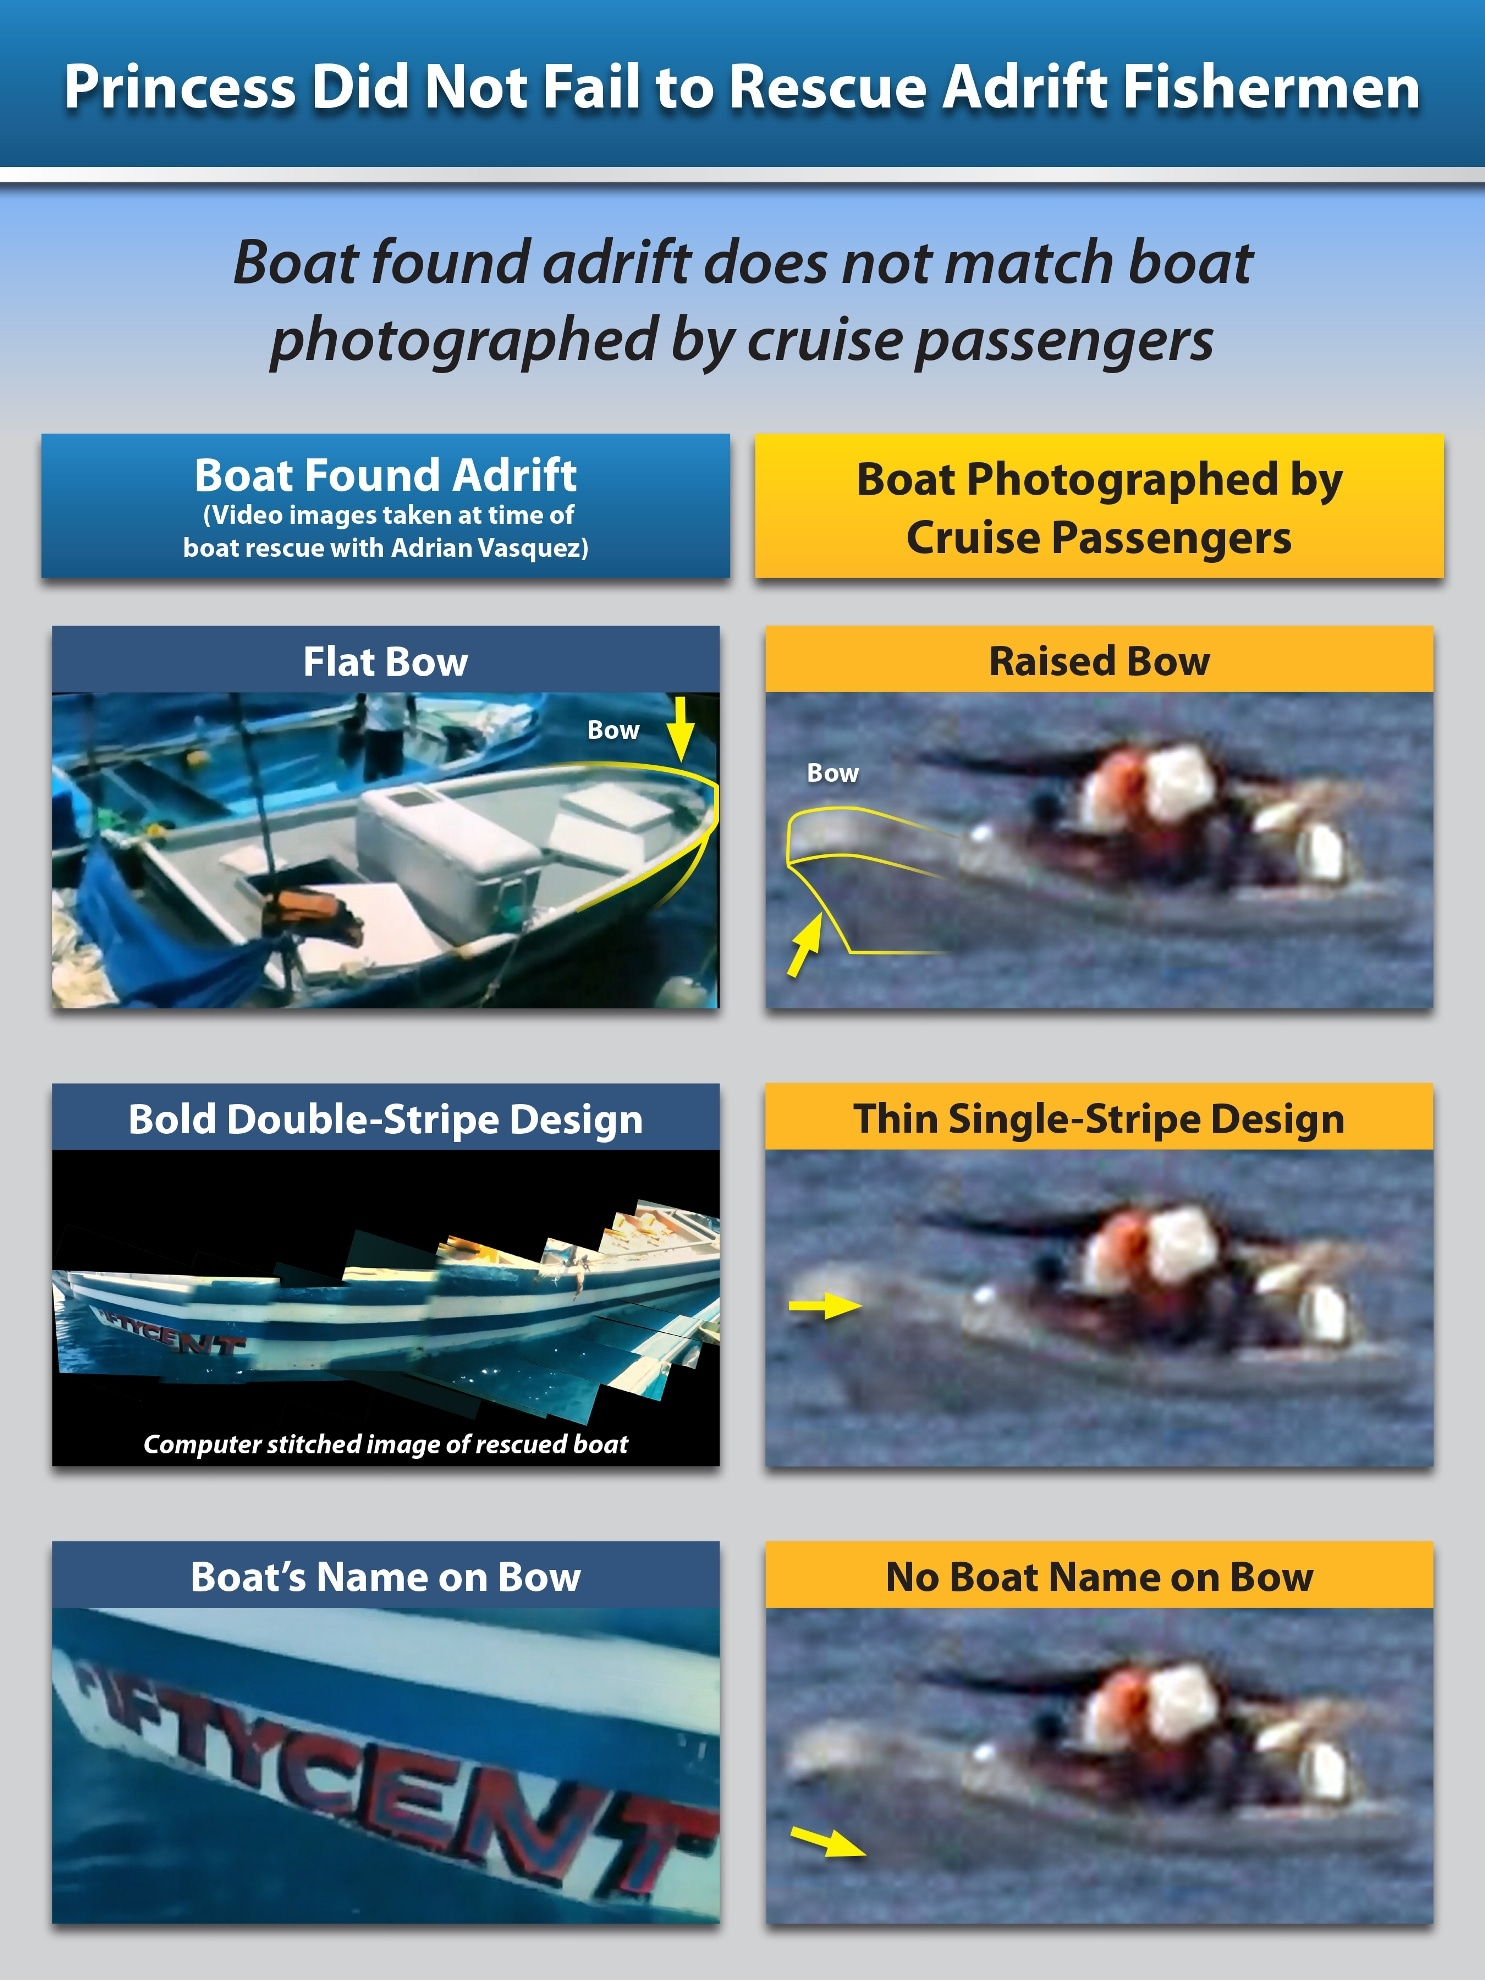 A Graphic Comparing The Fifty Cent And The Boat Photographed By Princess  Passengers Can Be Found Here: ...